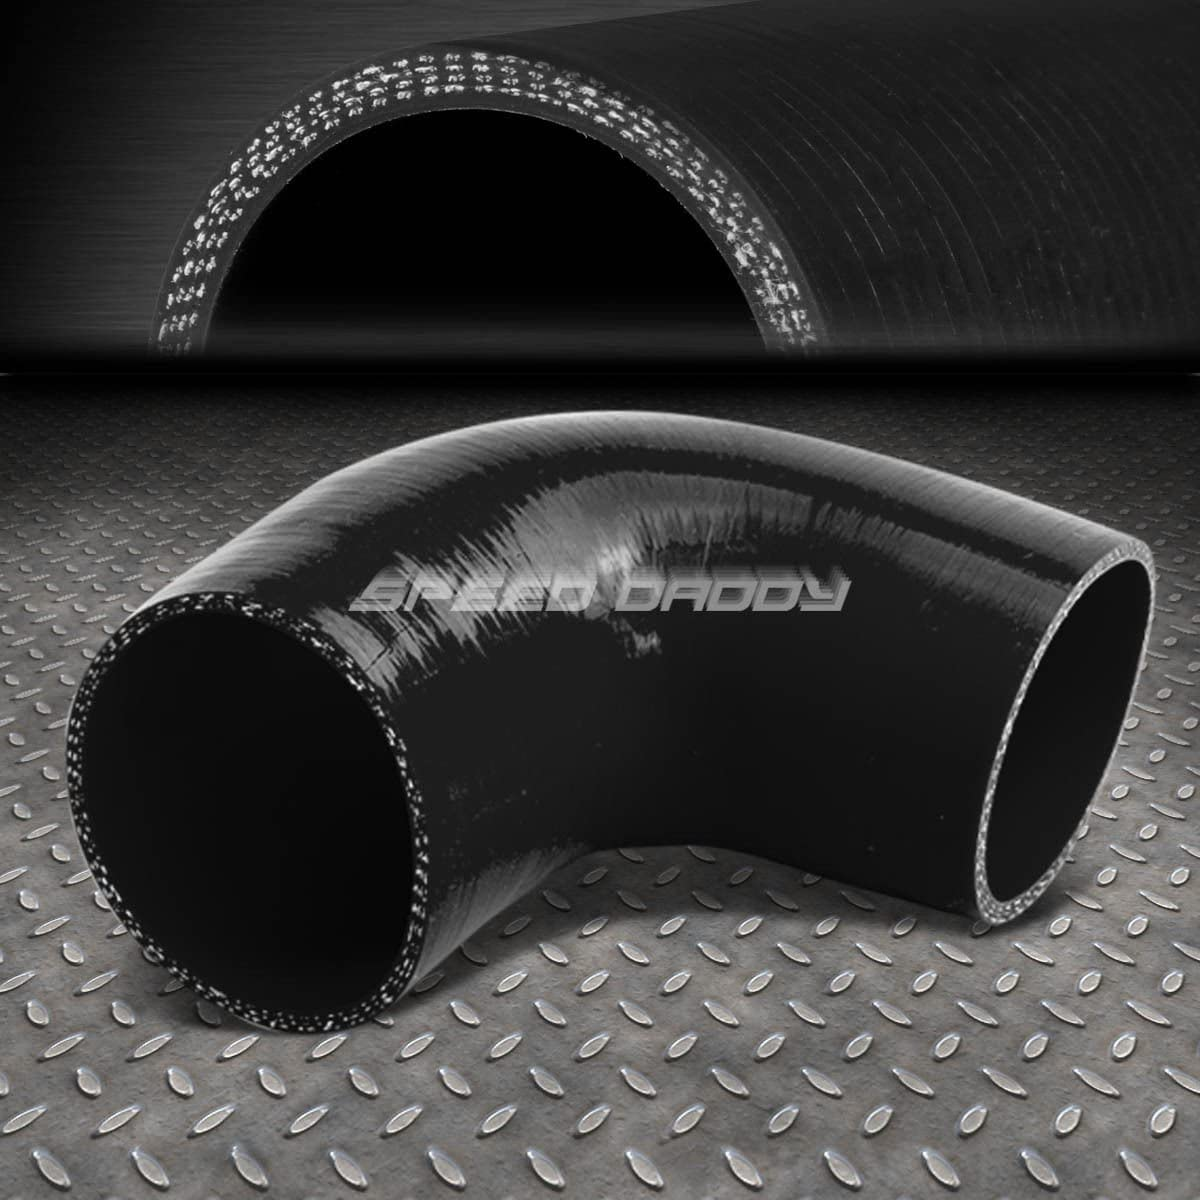 Black 4 inches to 4 inches 90 Degree Elbow 4-Ply Turbo//Intake//Intercooler Piping Silicone Coupler Hose+T-Clamp